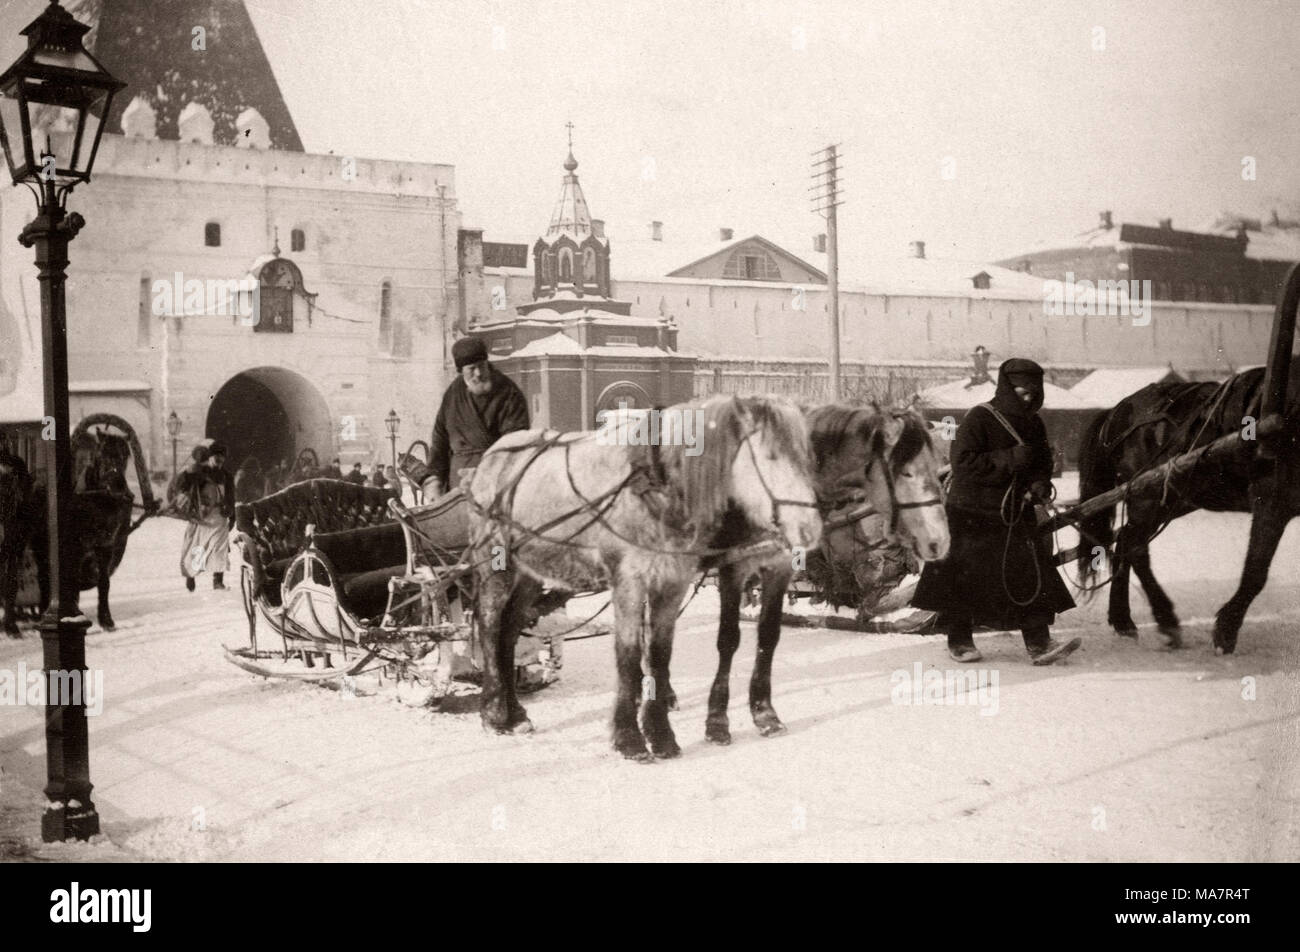 19th century vintage photograph Russia - hackney cab, snow sleigh, pony. - Stock Image